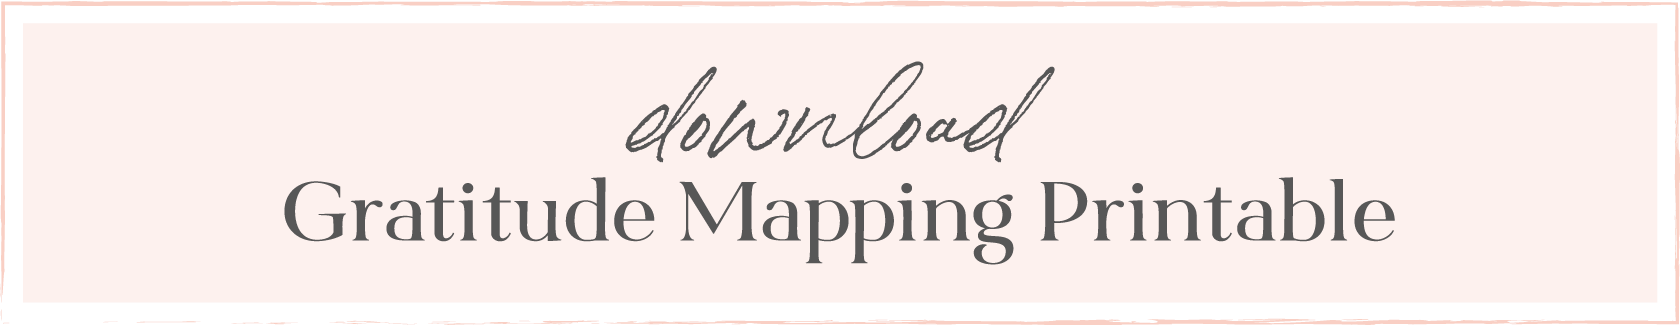 download gratitude mapping